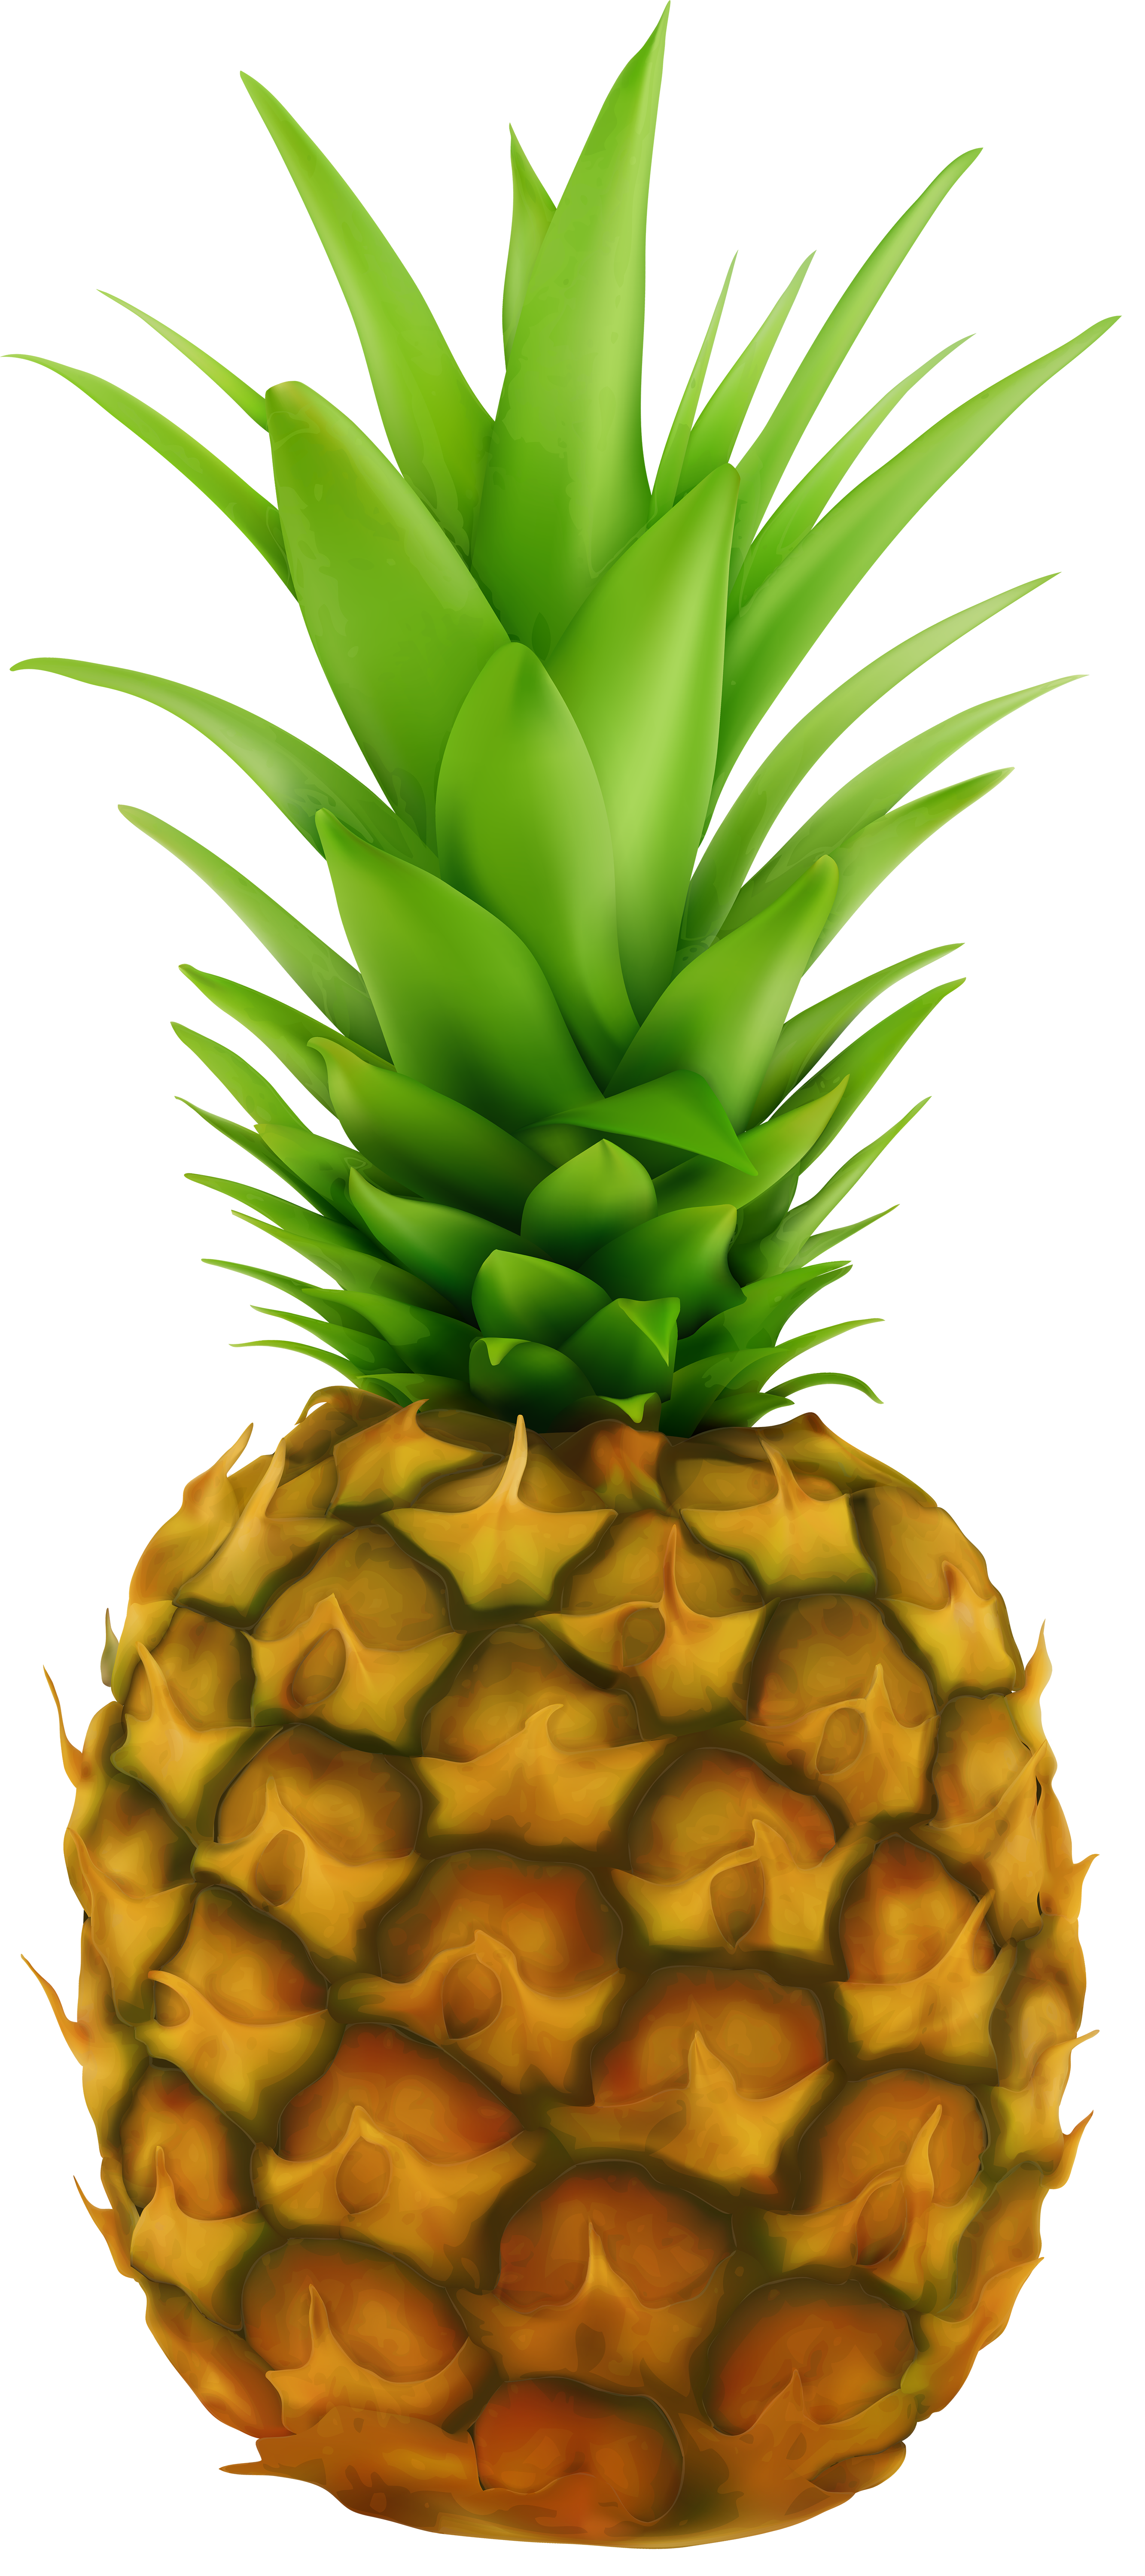 picture royalty free library Clip art image gallery. Beach transparent pineapple